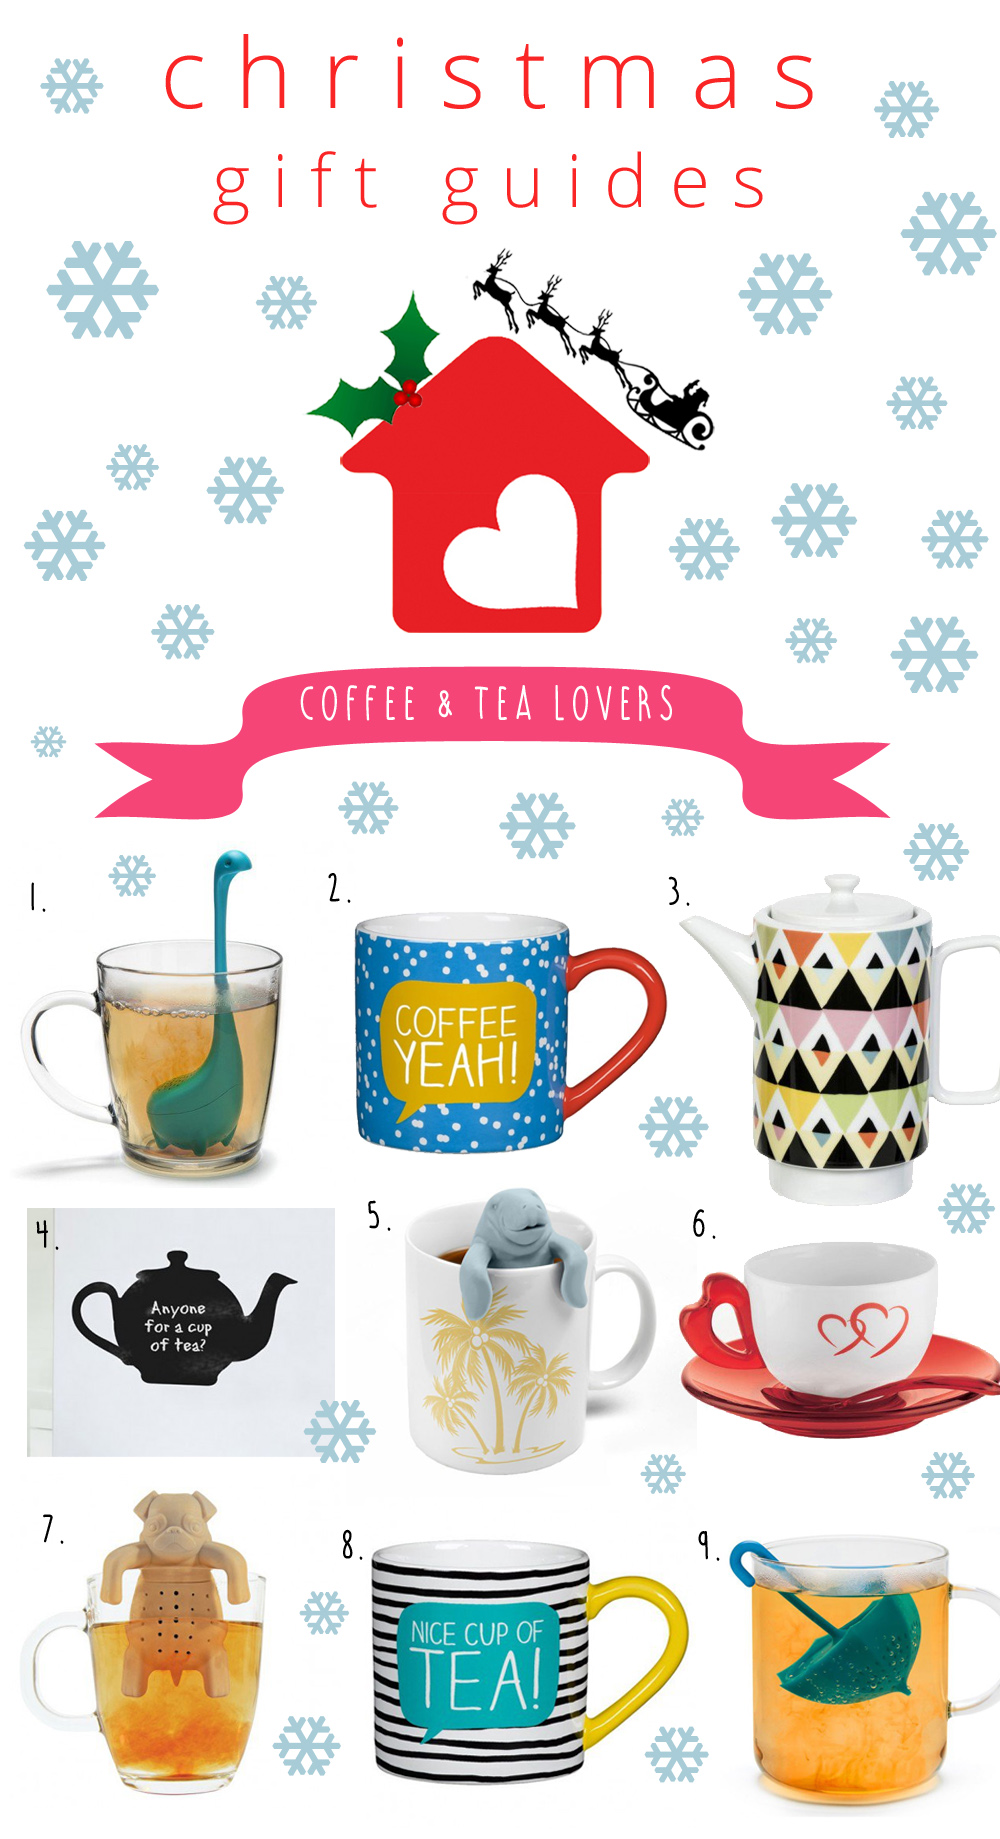 xmas guides coffee lovers